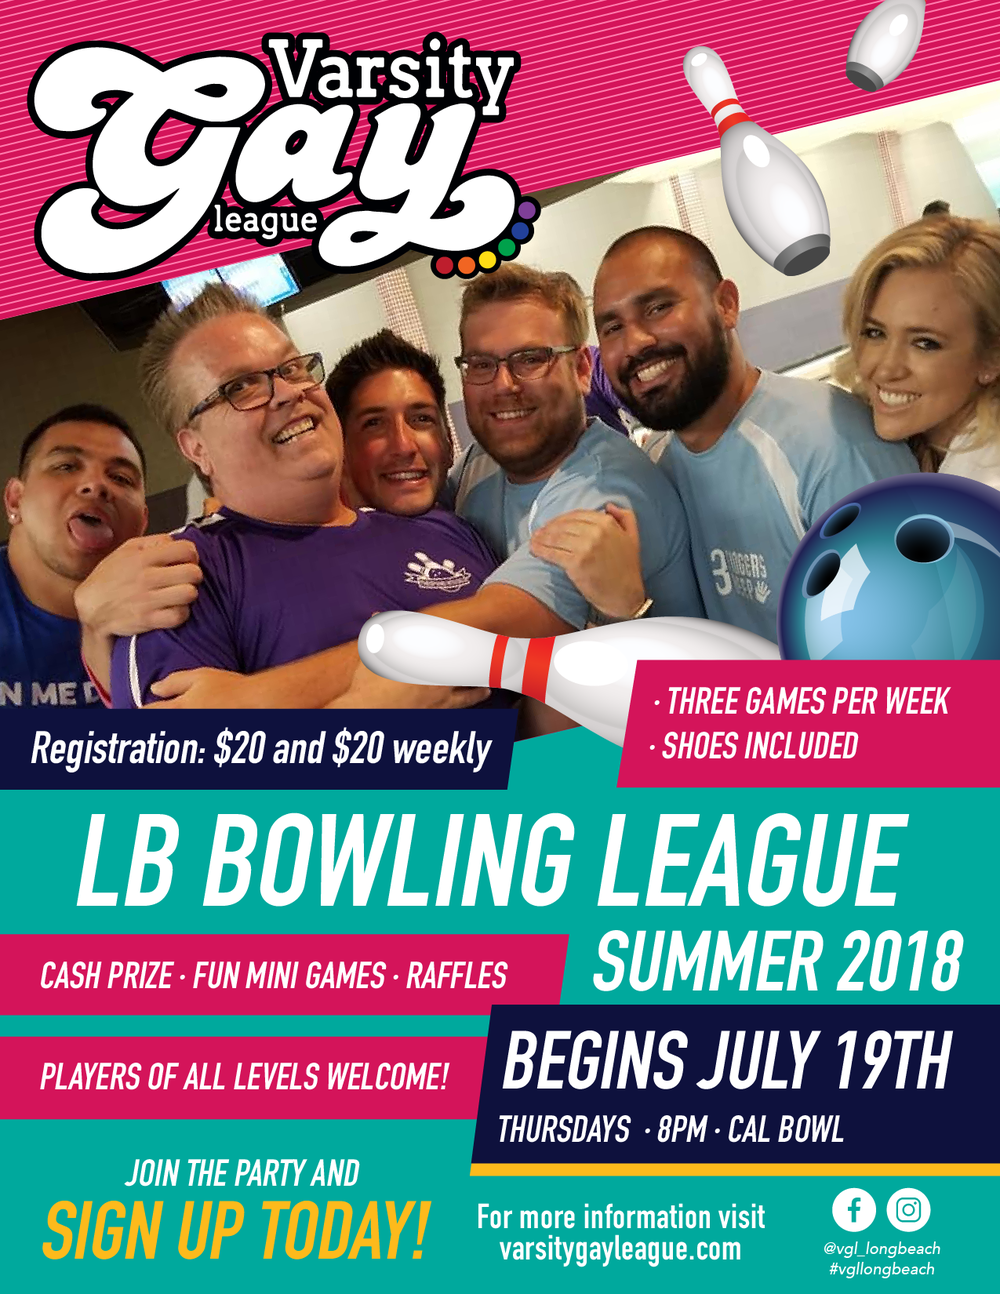 VGL_BOWLING_SUMMER18-01.png